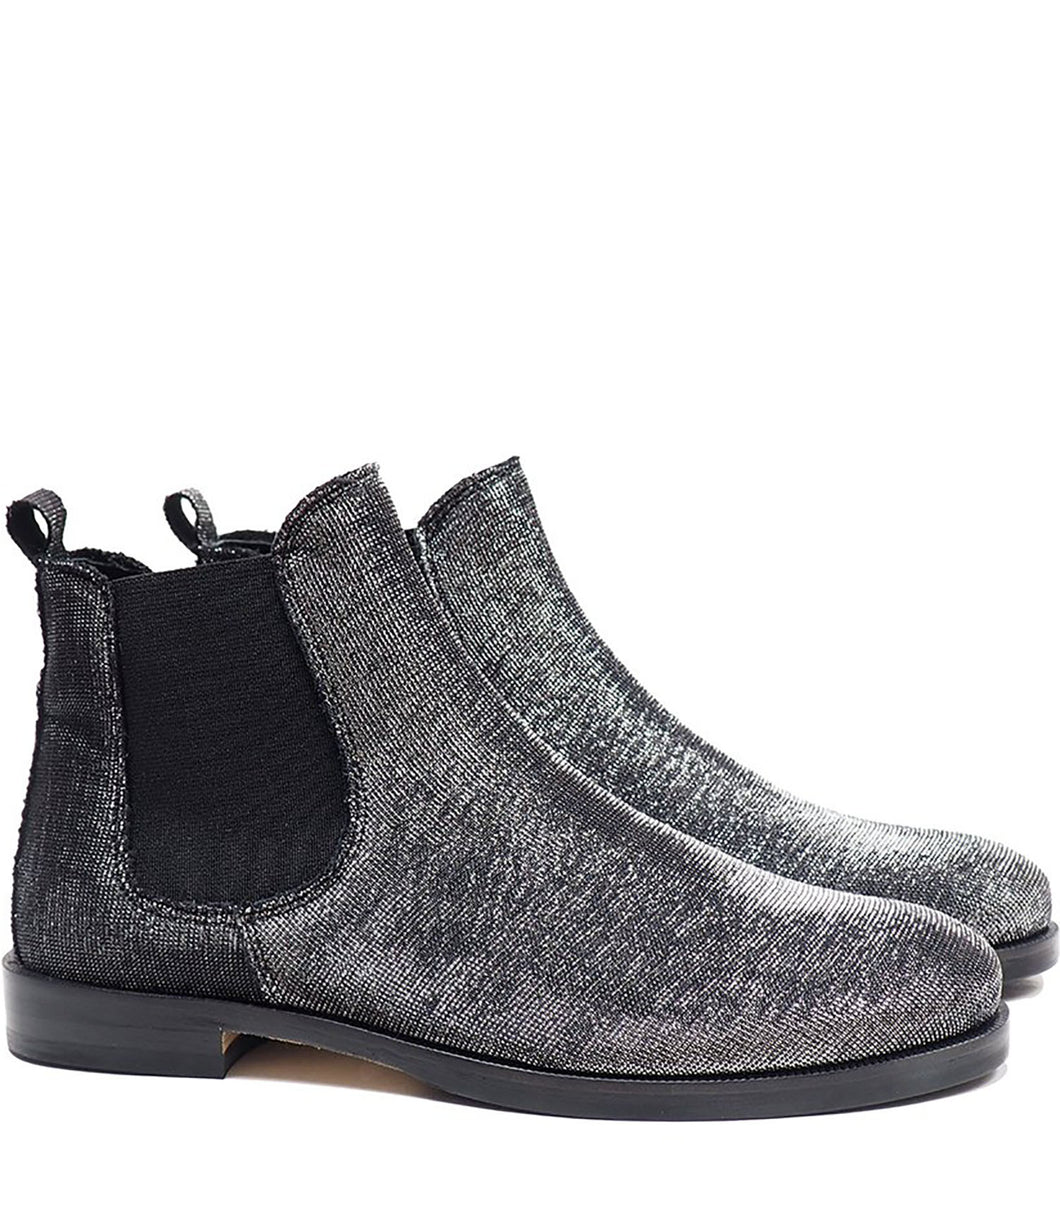 Chelsea boots in black lurex